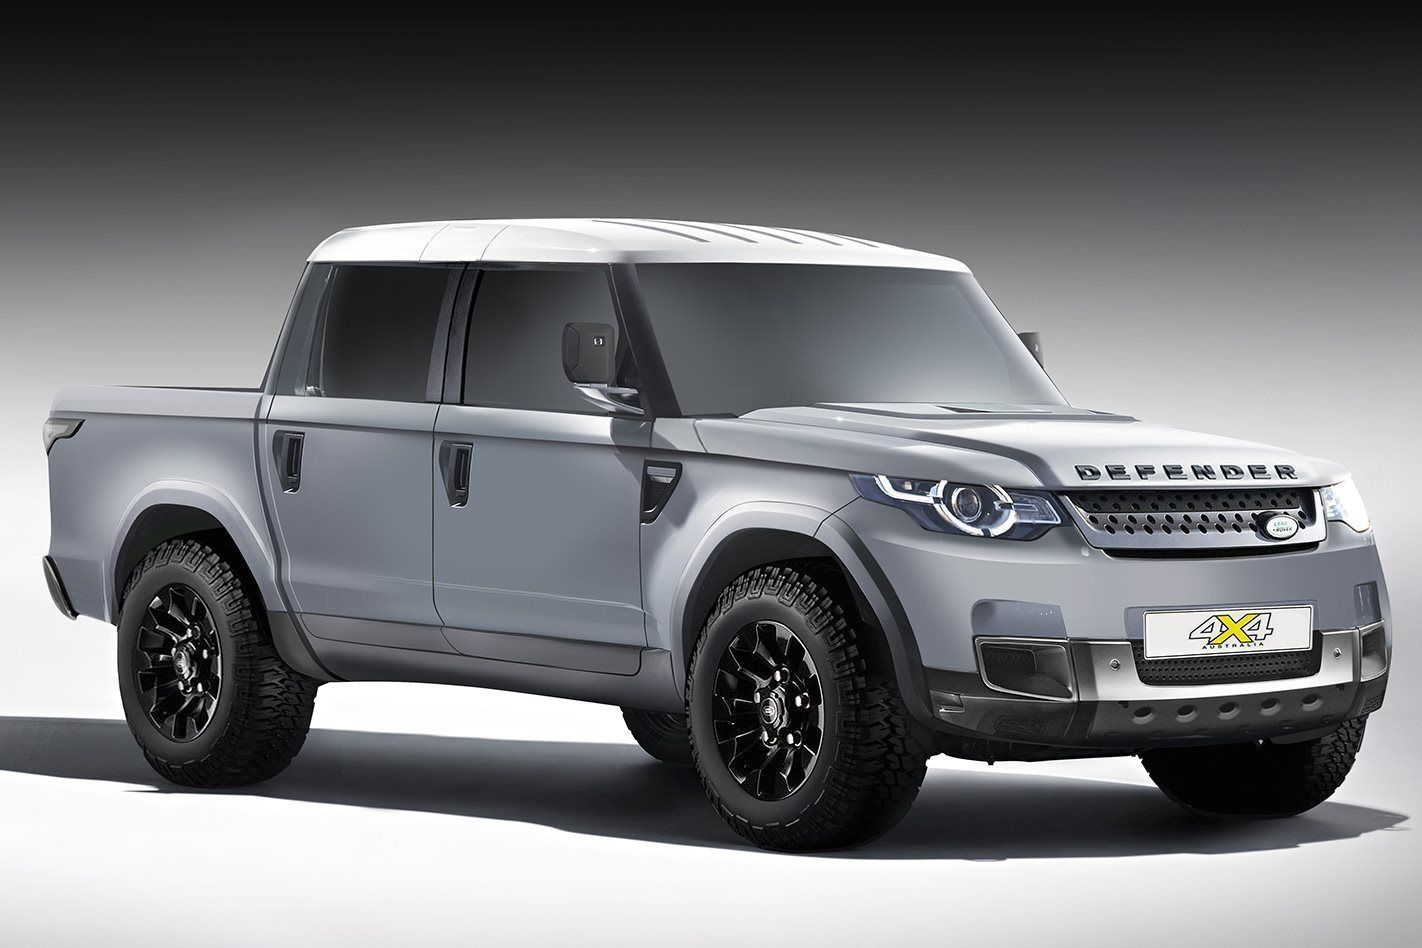 Best 2020 Land Rover Defender Redesign Car Price 2019